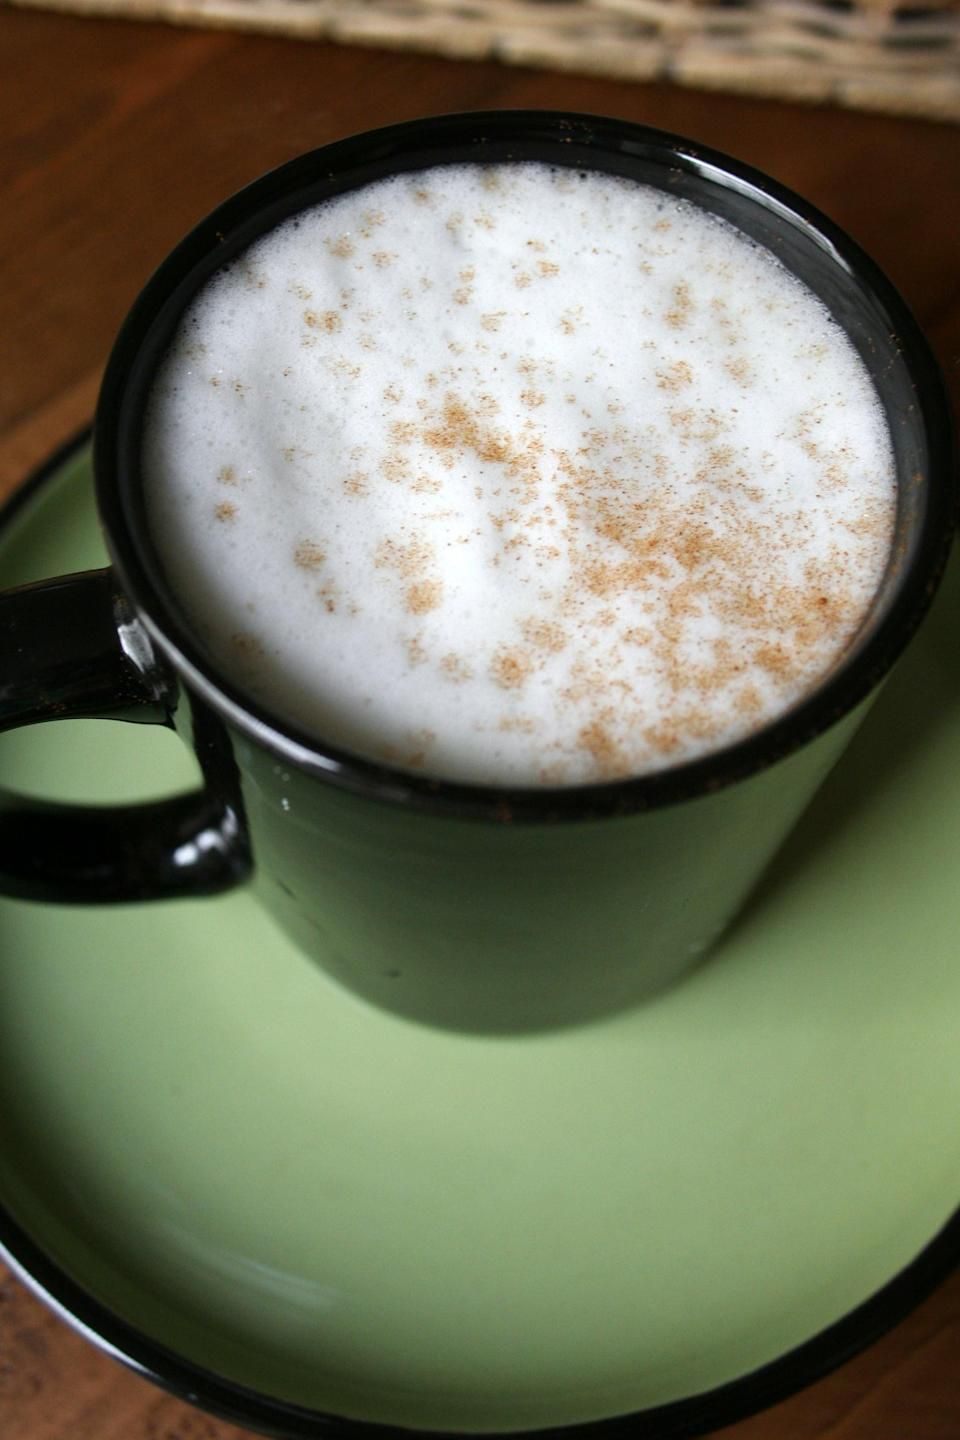 """<p>Chai tea is a fan favorite, and for good reason! When black tea is infused with cinnamon, cloves, and other warming spices, it results in a drool-worthy balance of sweet and spicy. Just add steamed milk.</p> <p><strong>Original Starbucks Drink:</strong> <a href=""""http://www.starbucks.com/menu/drinks/tea/chai-latte"""" class=""""link rapid-noclick-resp"""" rel=""""nofollow noopener"""" target=""""_blank"""" data-ylk=""""slk:classic chai tea latte"""">classic chai tea latte</a></p> <p><strong>Homemade Version:</strong> <a href=""""https://www.popsugar.com/food/How-Make-Homemade-Chai-Tea-Lattes-19308913"""" class=""""link rapid-noclick-resp"""" rel=""""nofollow noopener"""" target=""""_blank"""" data-ylk=""""slk:chai tea latte"""">chai tea latte</a></p>"""